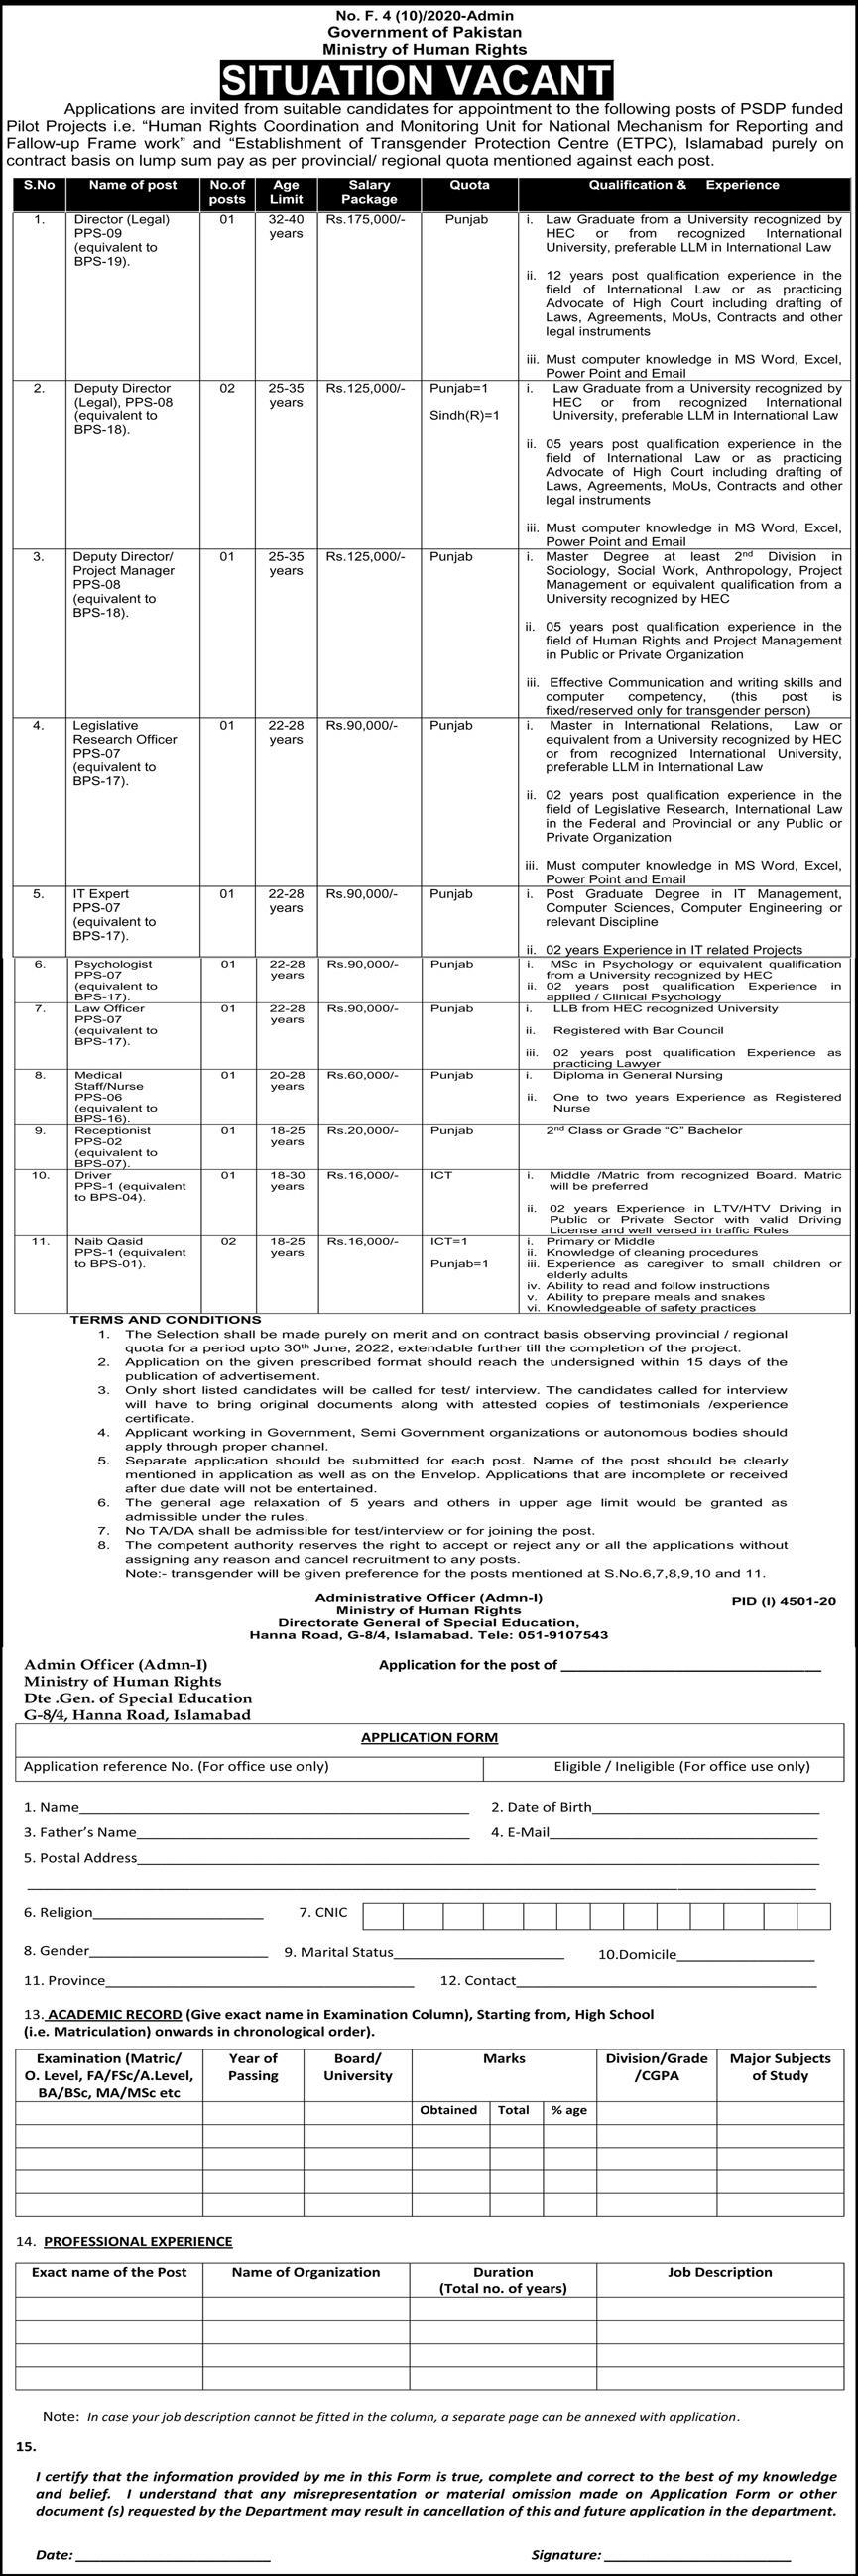 Ministry Of Human Rights jobs newspaper ad for It Expert in Islamabad on 2021-02-21